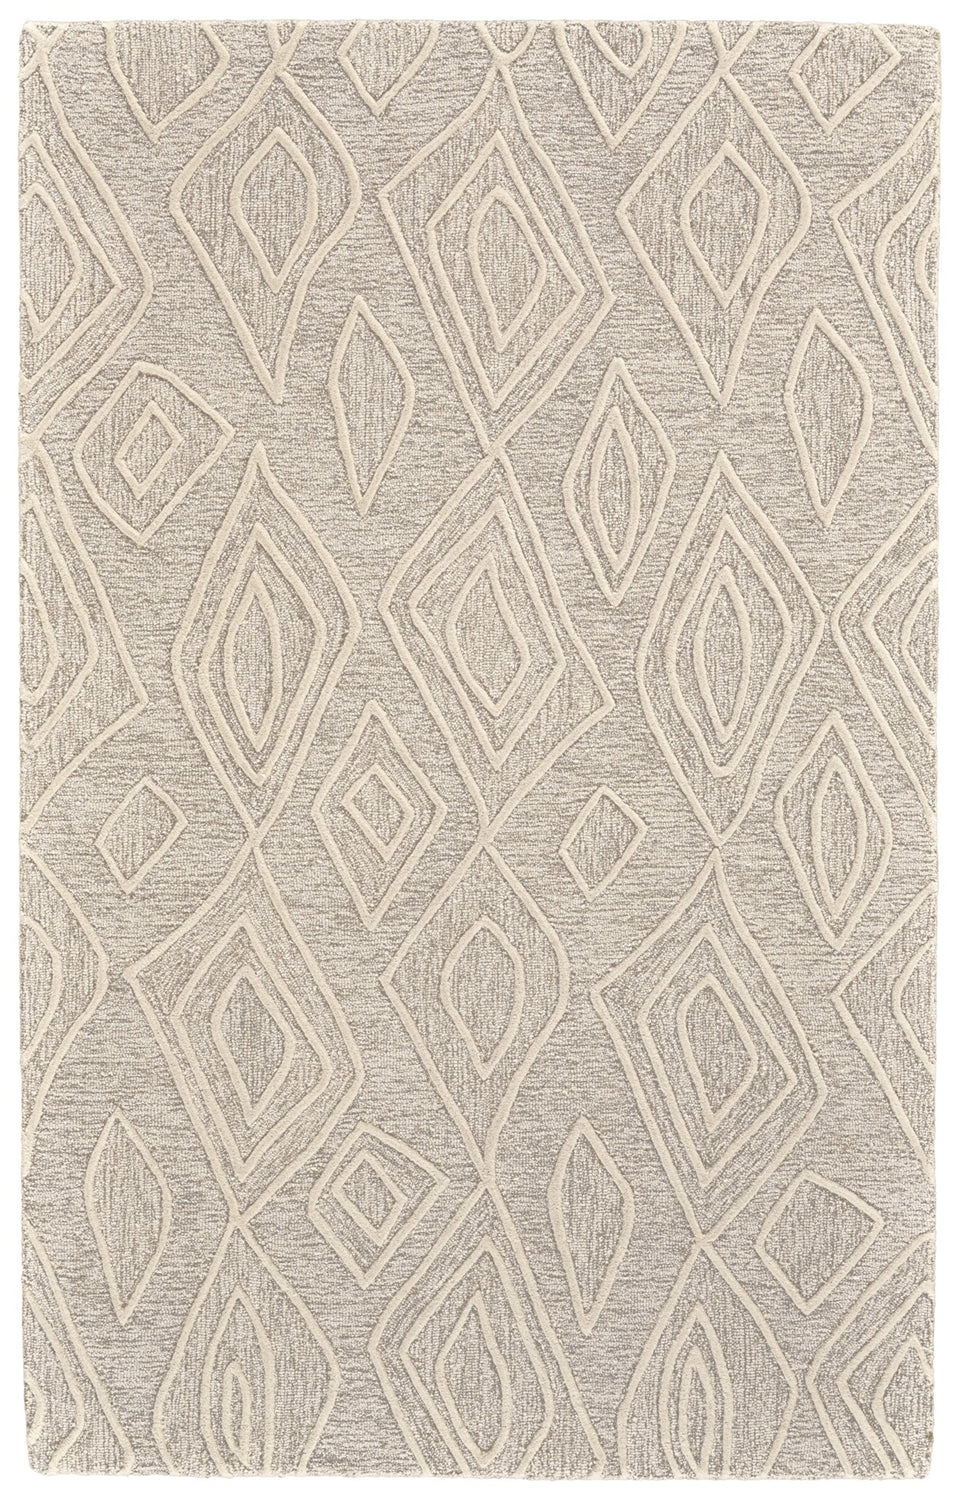 Feizy ENZO 8738F Area Rug